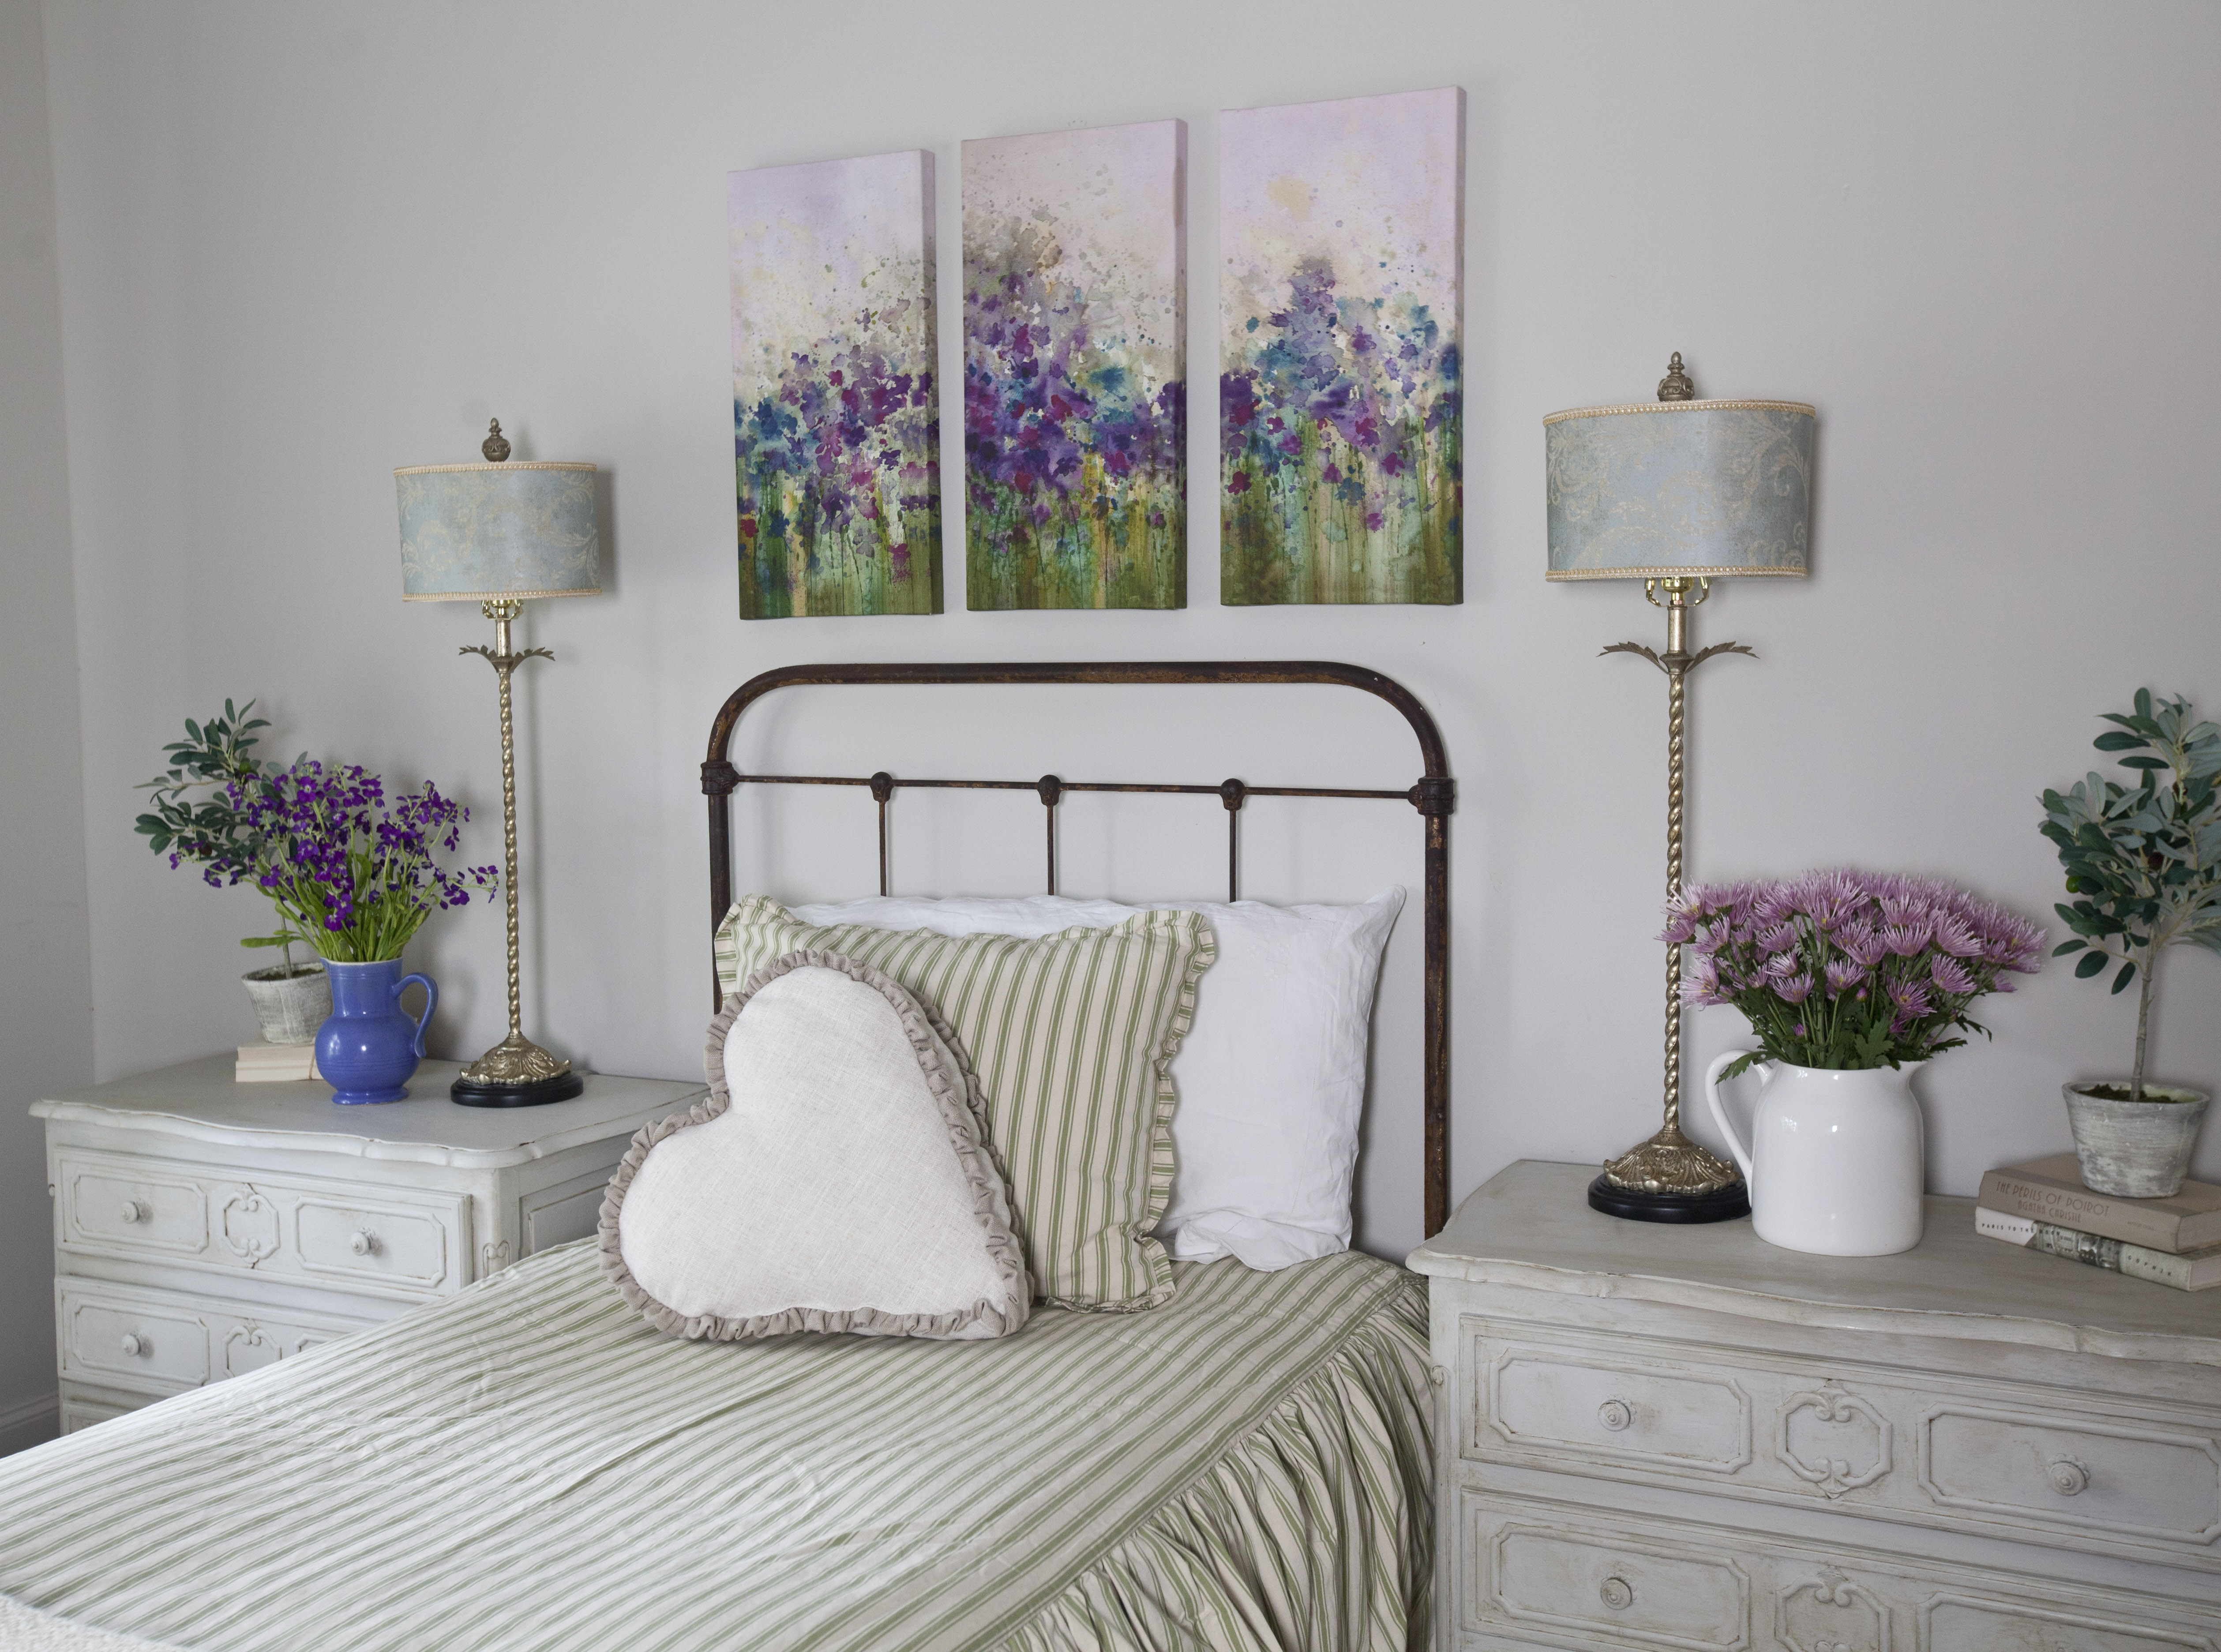 Cedar Hill Farmhouse bed and lamps